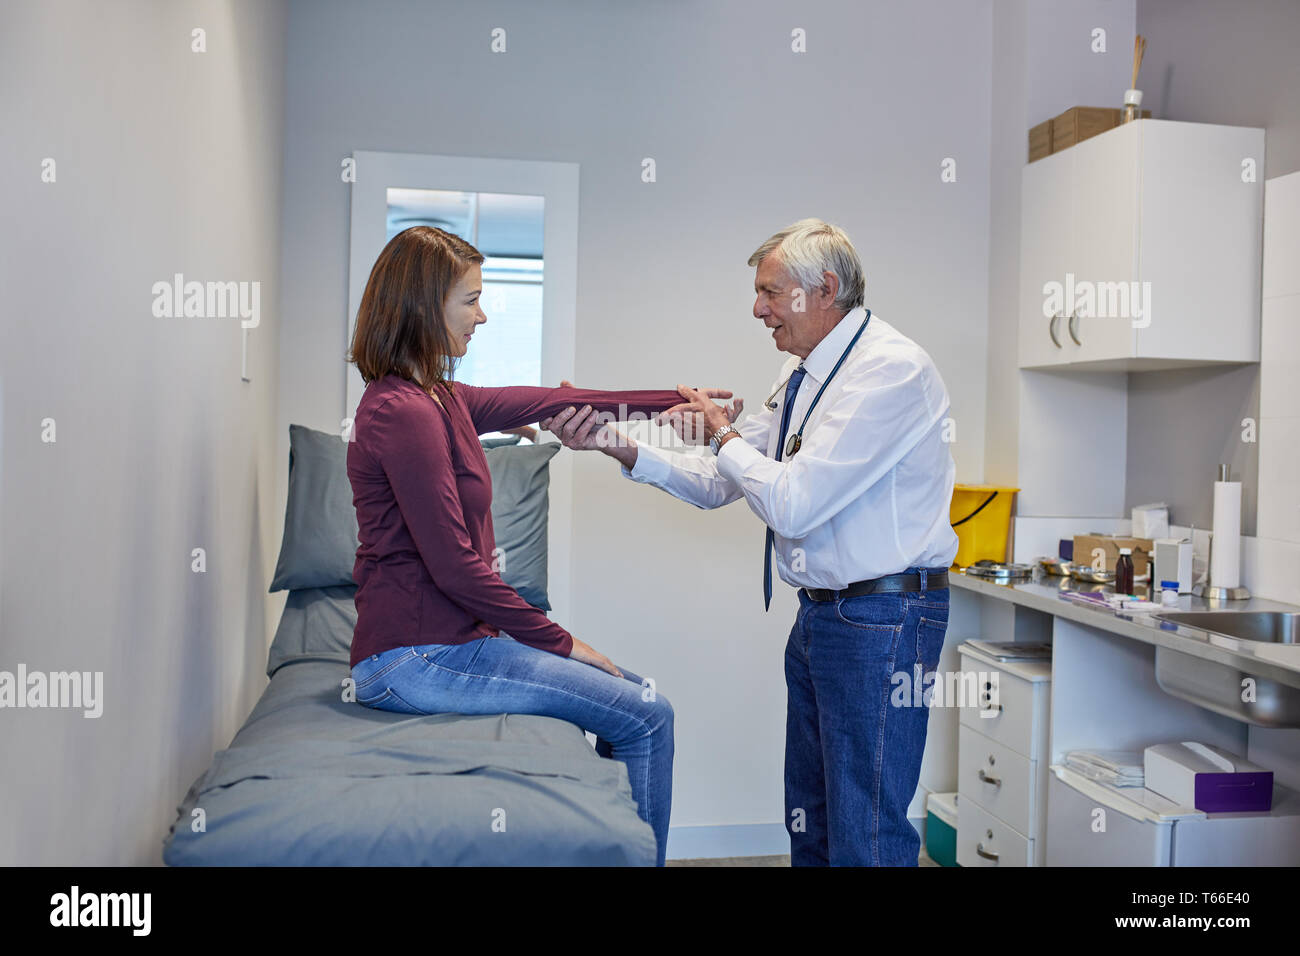 Male doctor examining arm of female patient in clinic examination room Stock Photo